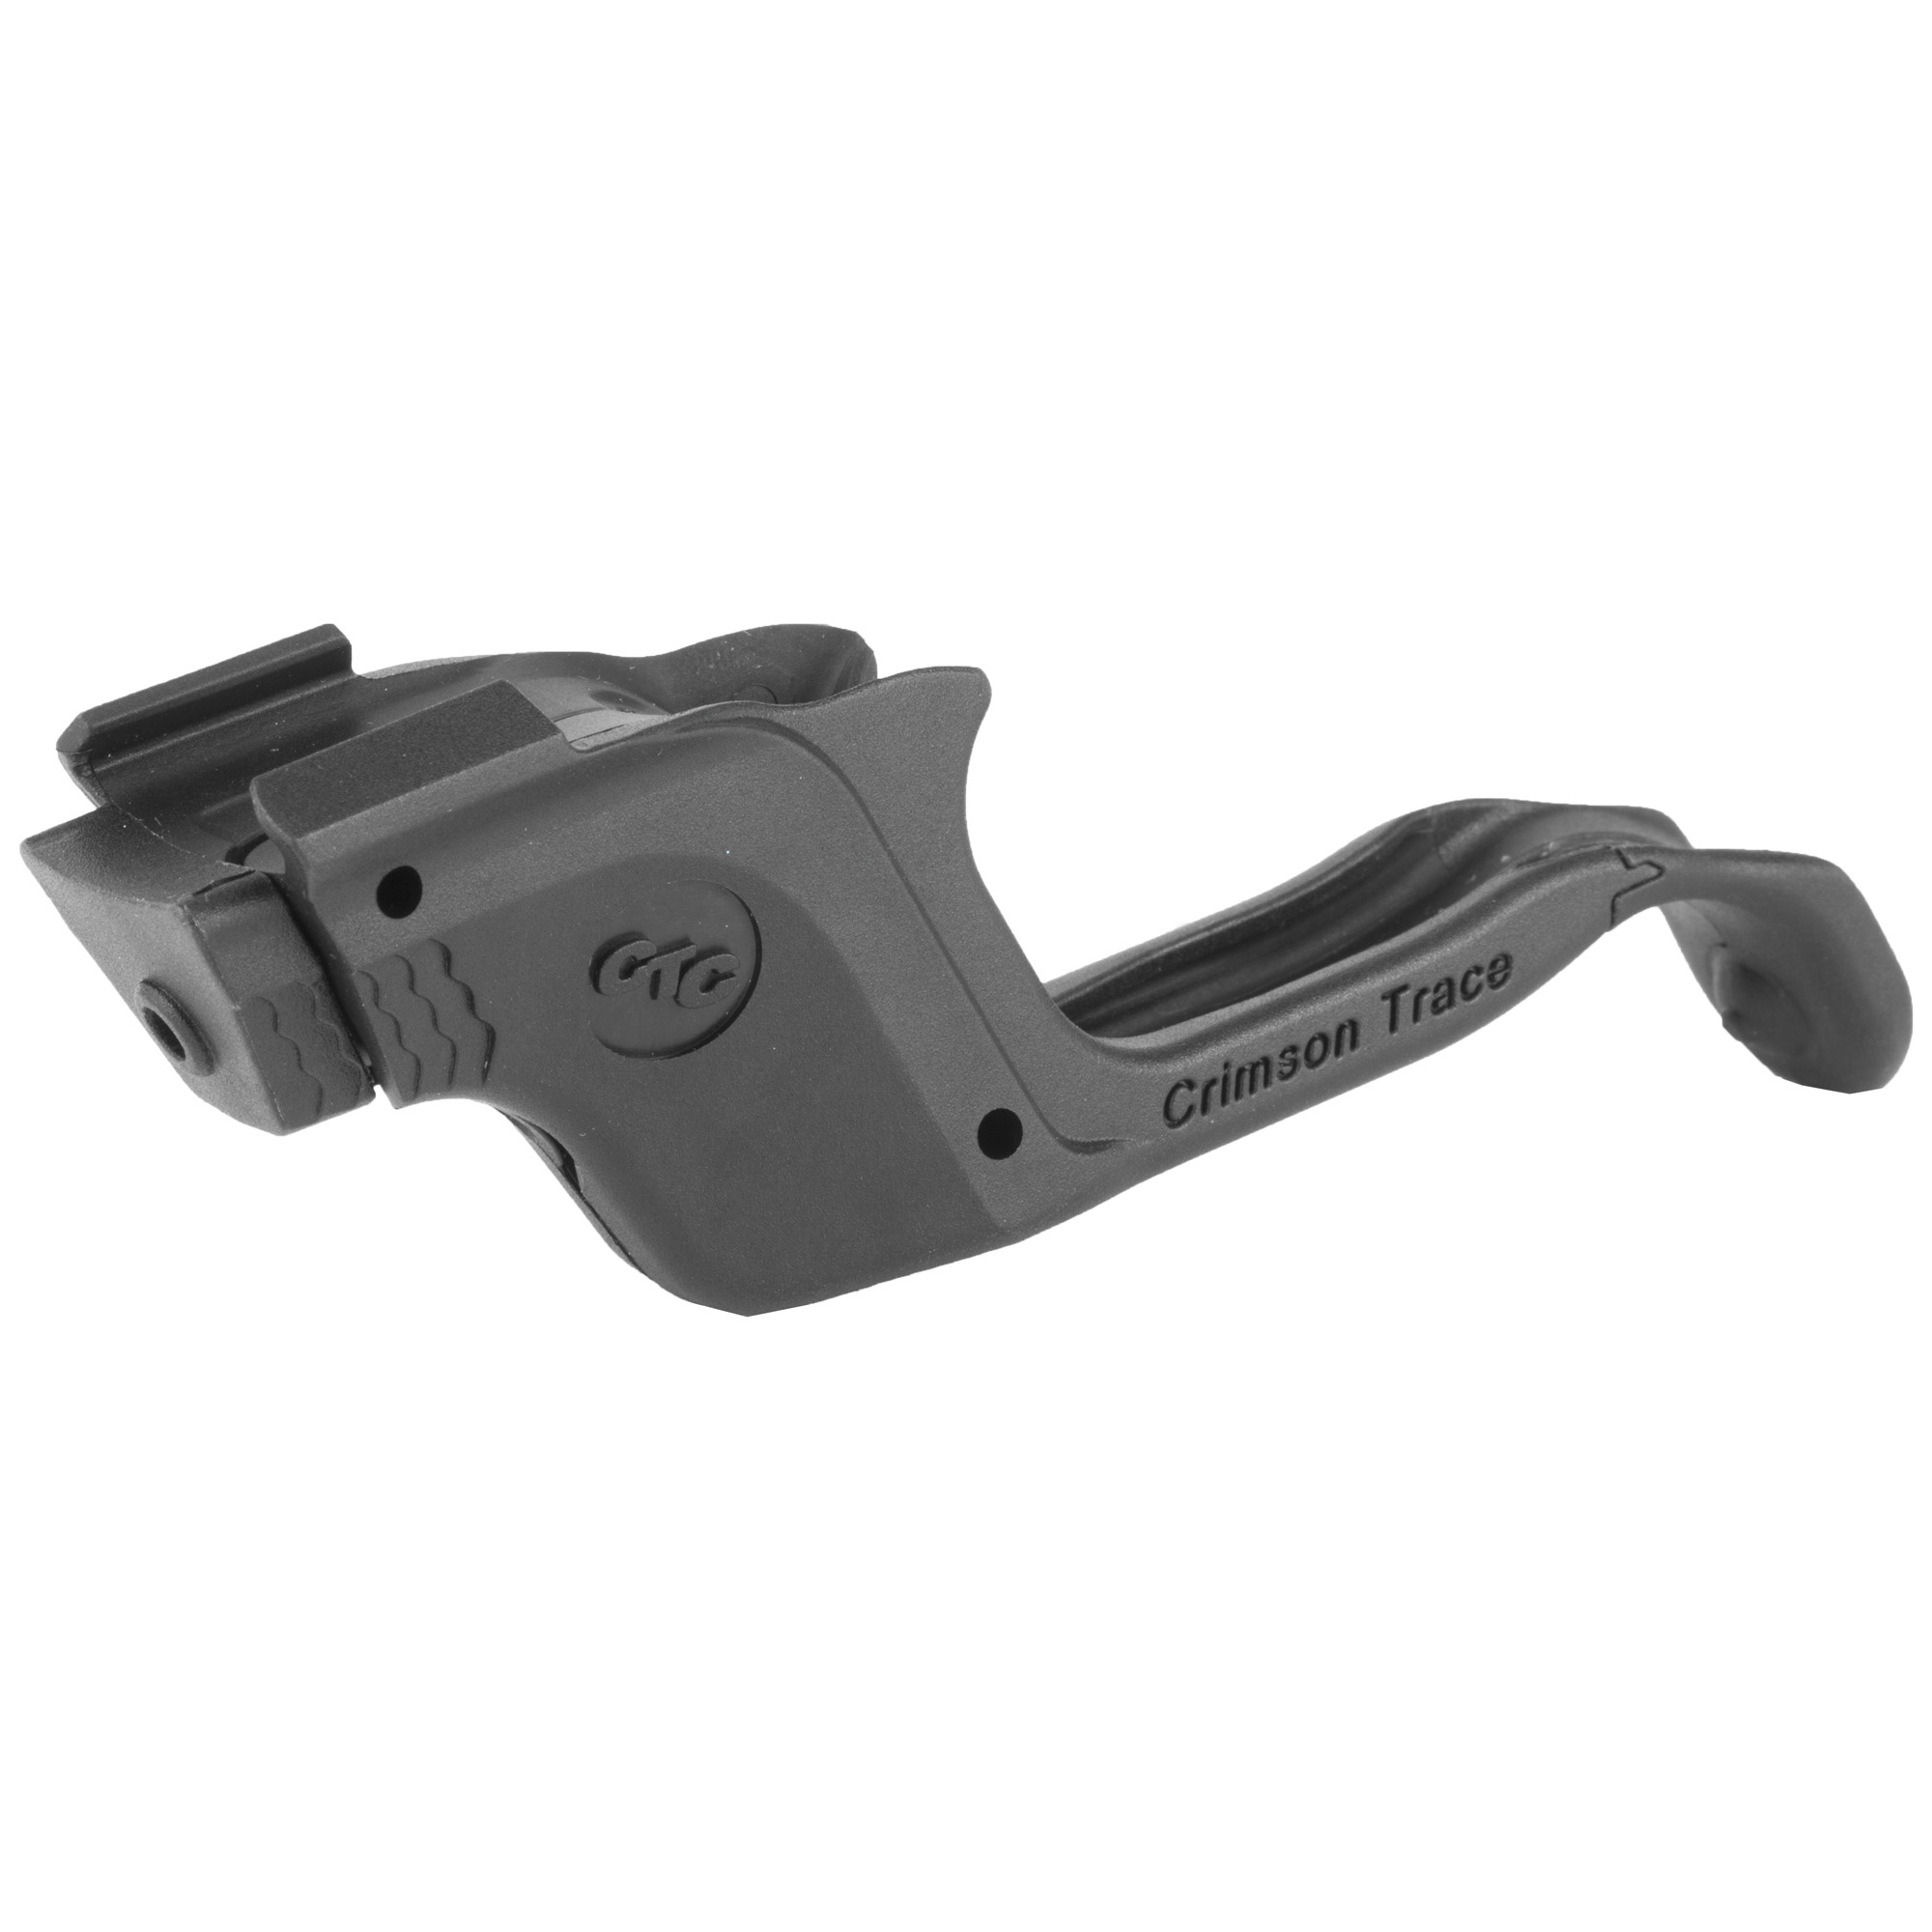 """LG-360G Green Laserguard(R) is a green laser sight specifically designed for Smith & Wesson M&P Full-Size and Compact pistols. User-installed in moments"""" and fully adjustable for windage and elevation"""" the LG-360G is securely mounted to the trigger guard and accessory rail. Featuring a bright green laser that is highly visible in all lighting conditions"""" the Laserguard runs for more than two hours with included battery. The LG-360G features Instinctive Activation(TM) which allows the laser to be activated when the pistol is held in a normal firing grip."""